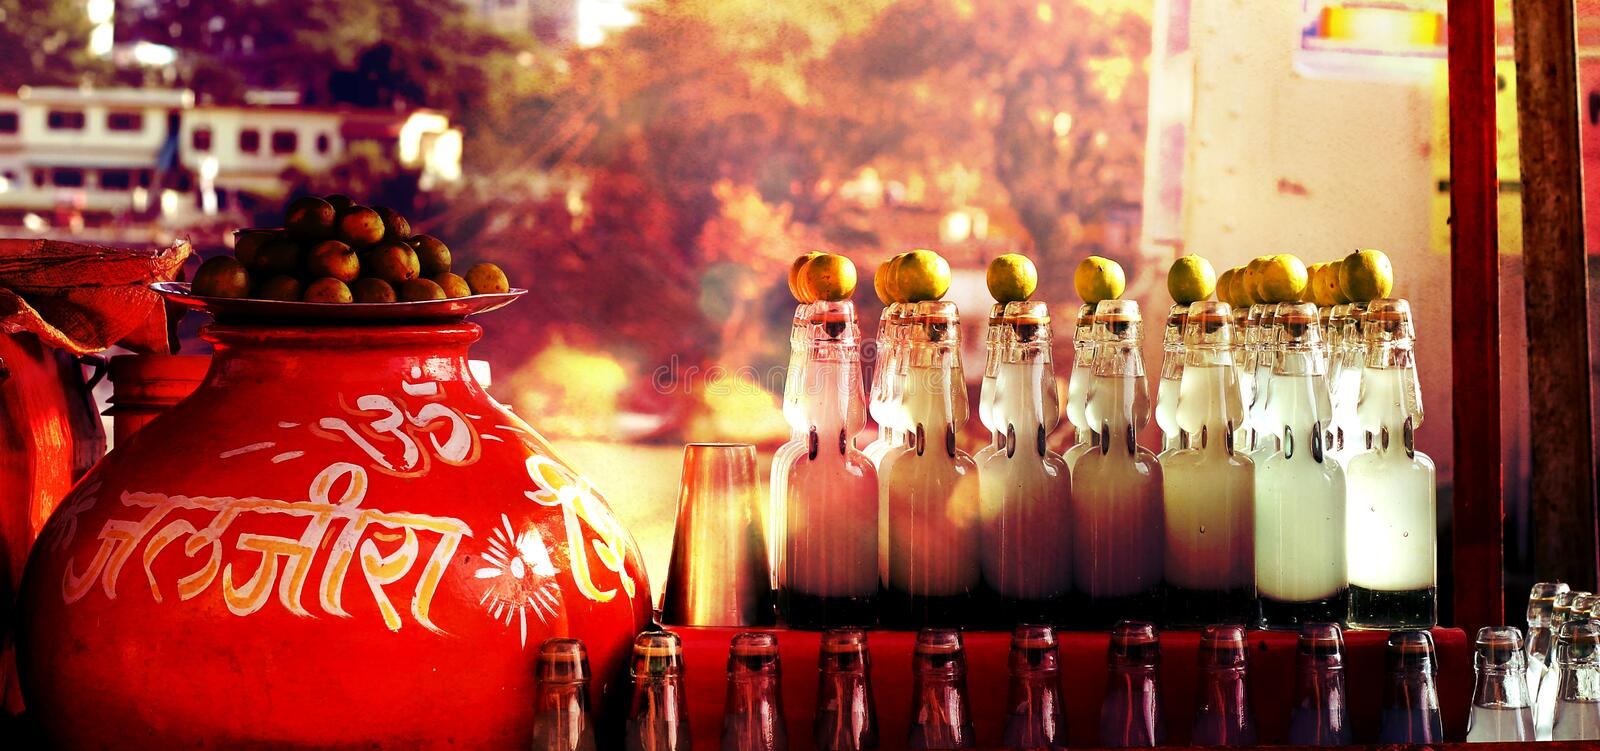 Bottled Drinks In Arabic Restaurant Free Public Domain Cc0 Image